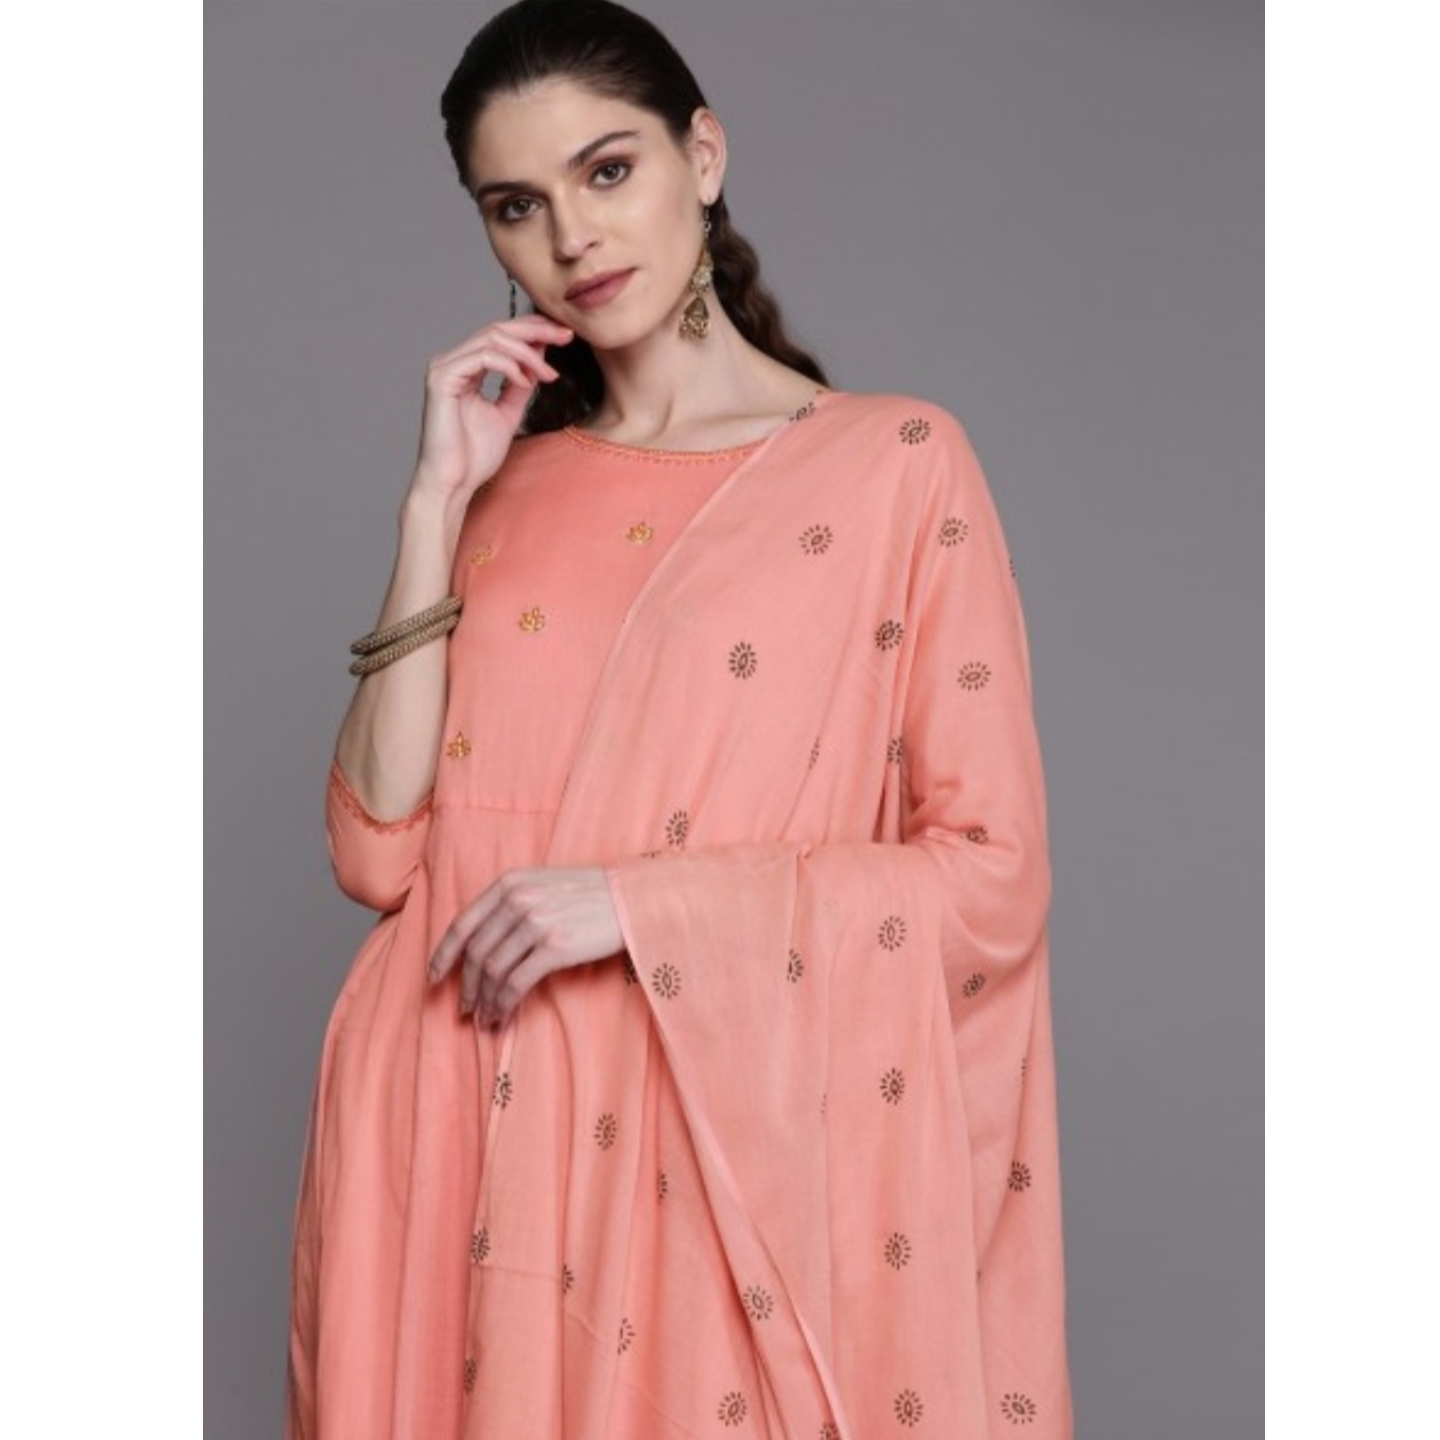 Peach-Coloured & Golden Yoke Design Anarkali Kurta With Dupatta